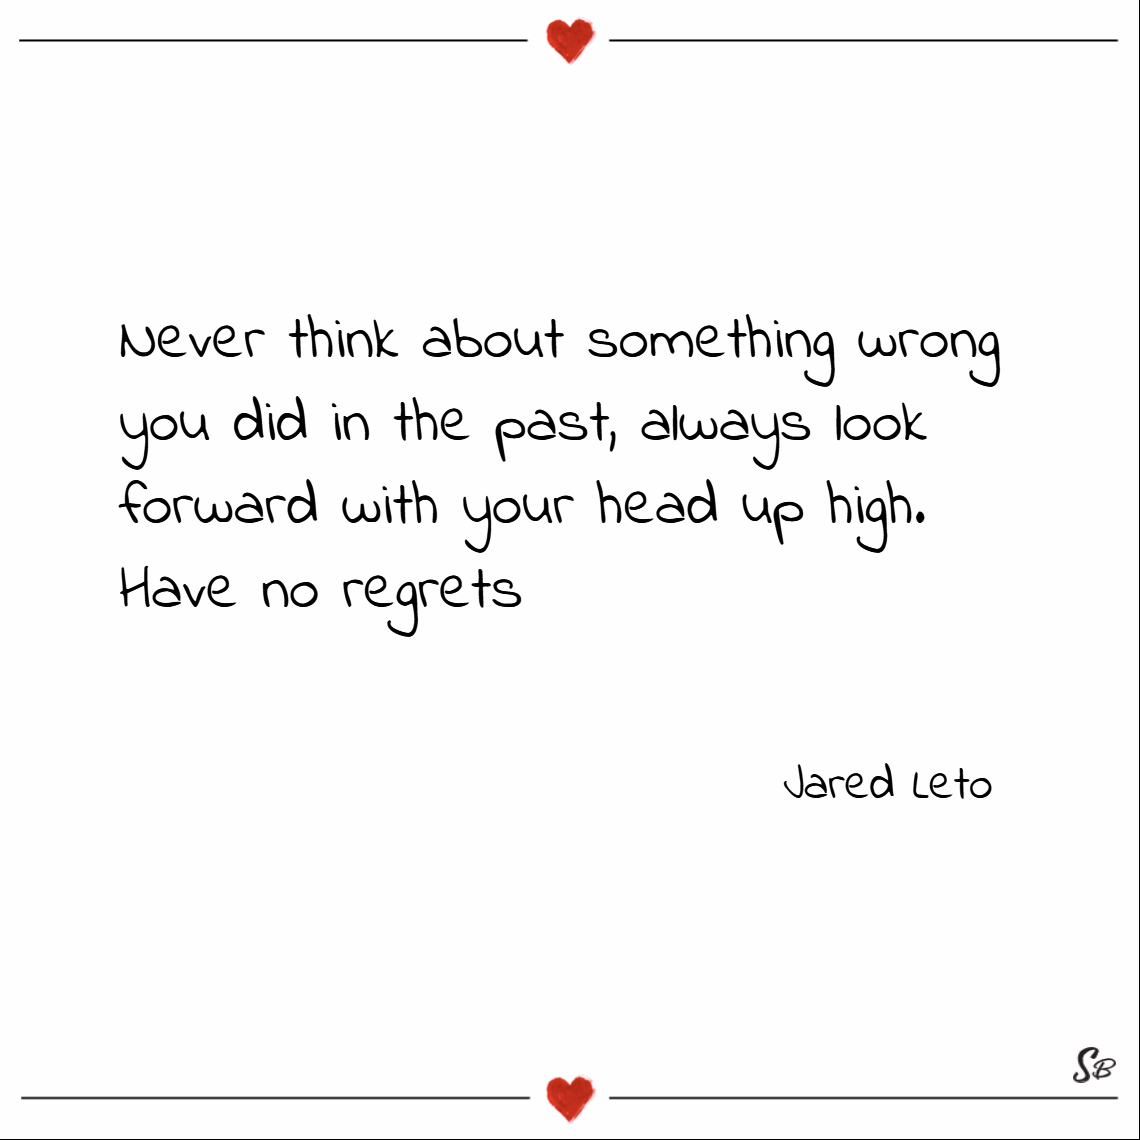 Never think about something wrong you did in the past, always look forward with your head up high; have no regrets. – jared leto